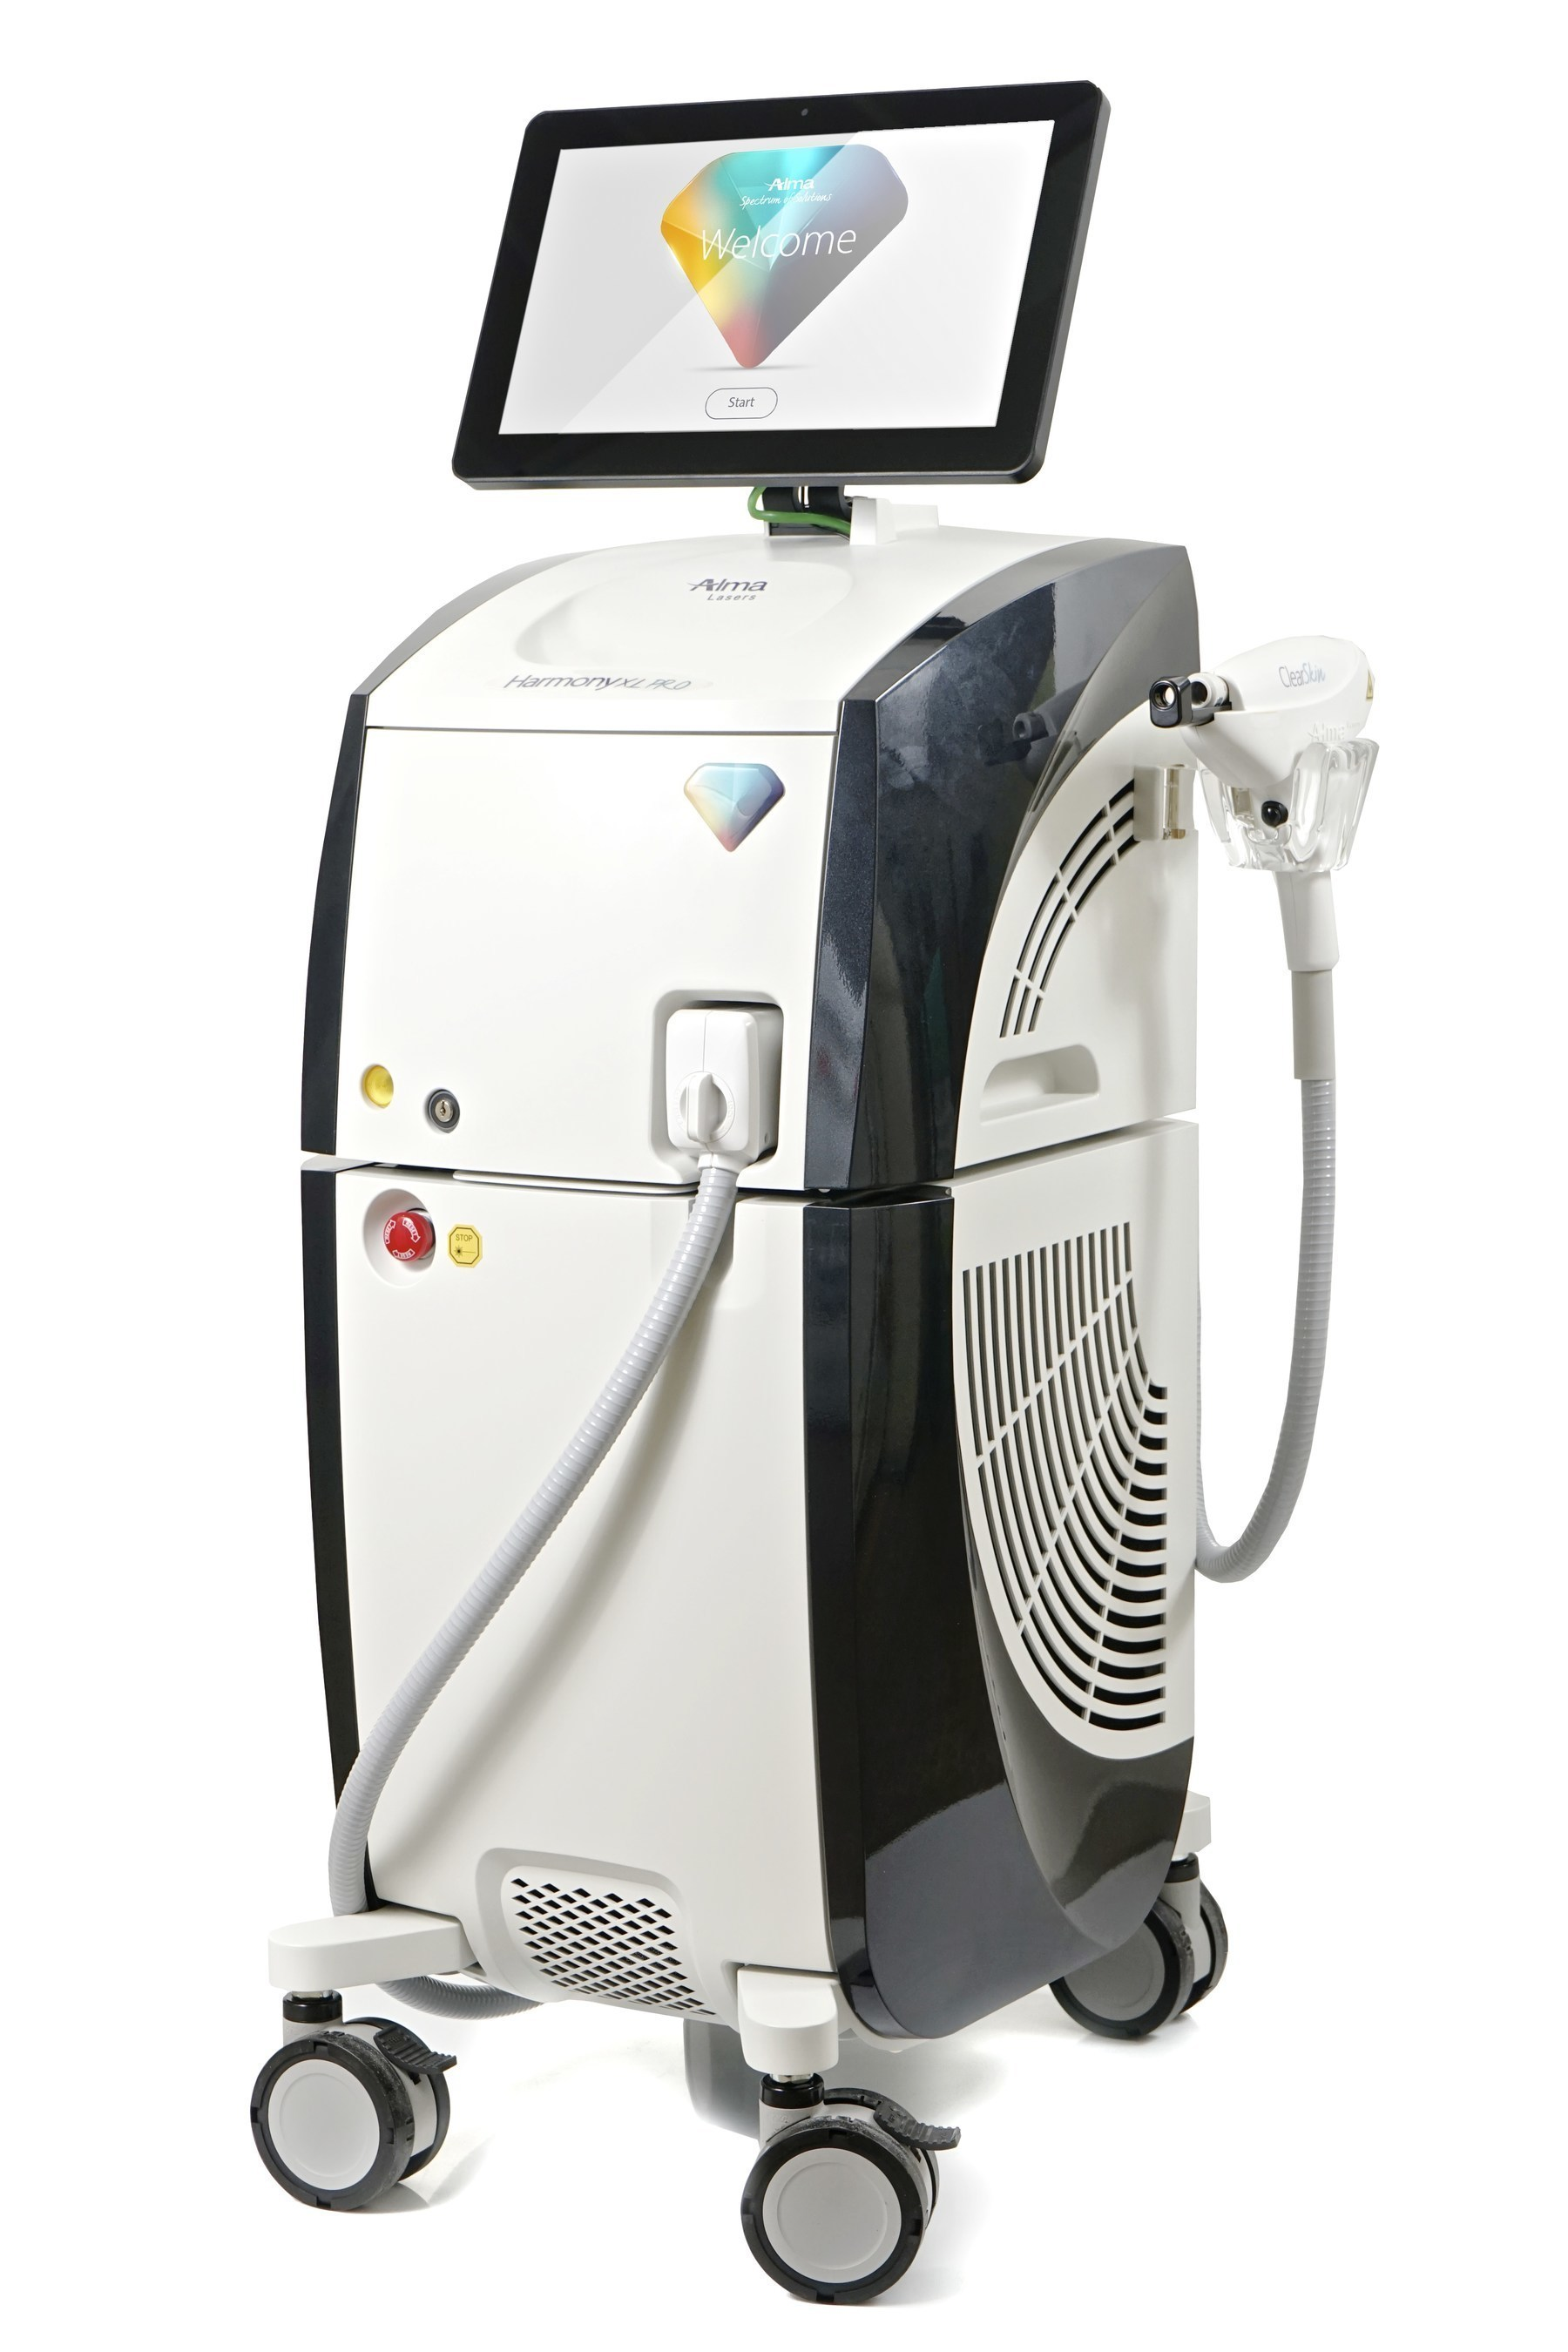 Alma Lasers Introduces Harmony XL Pro™, the Most Powerful